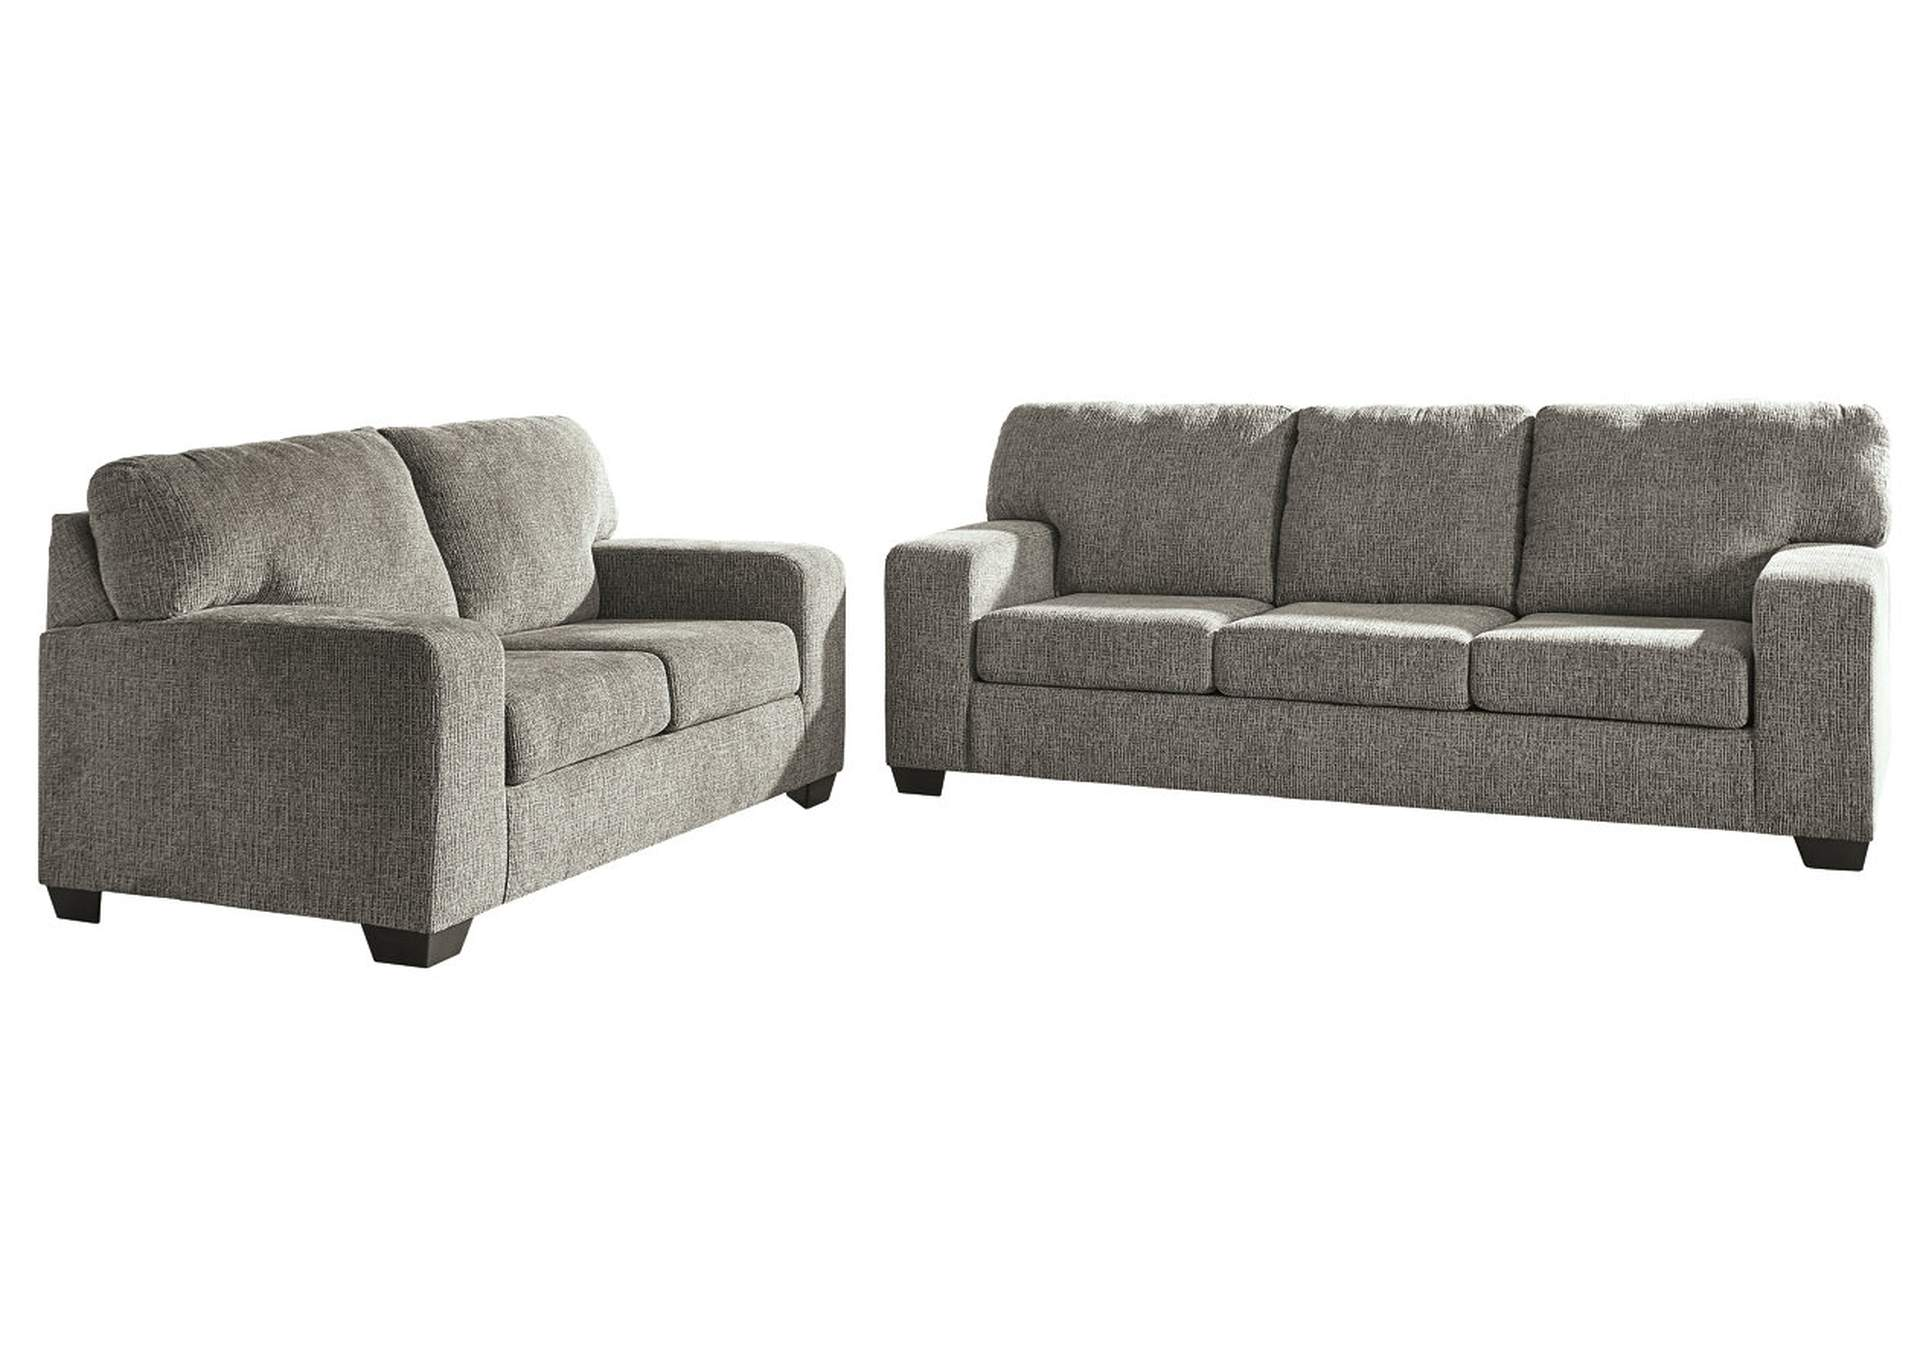 Termoli Sofa and Loveseat,Signature Design By Ashley